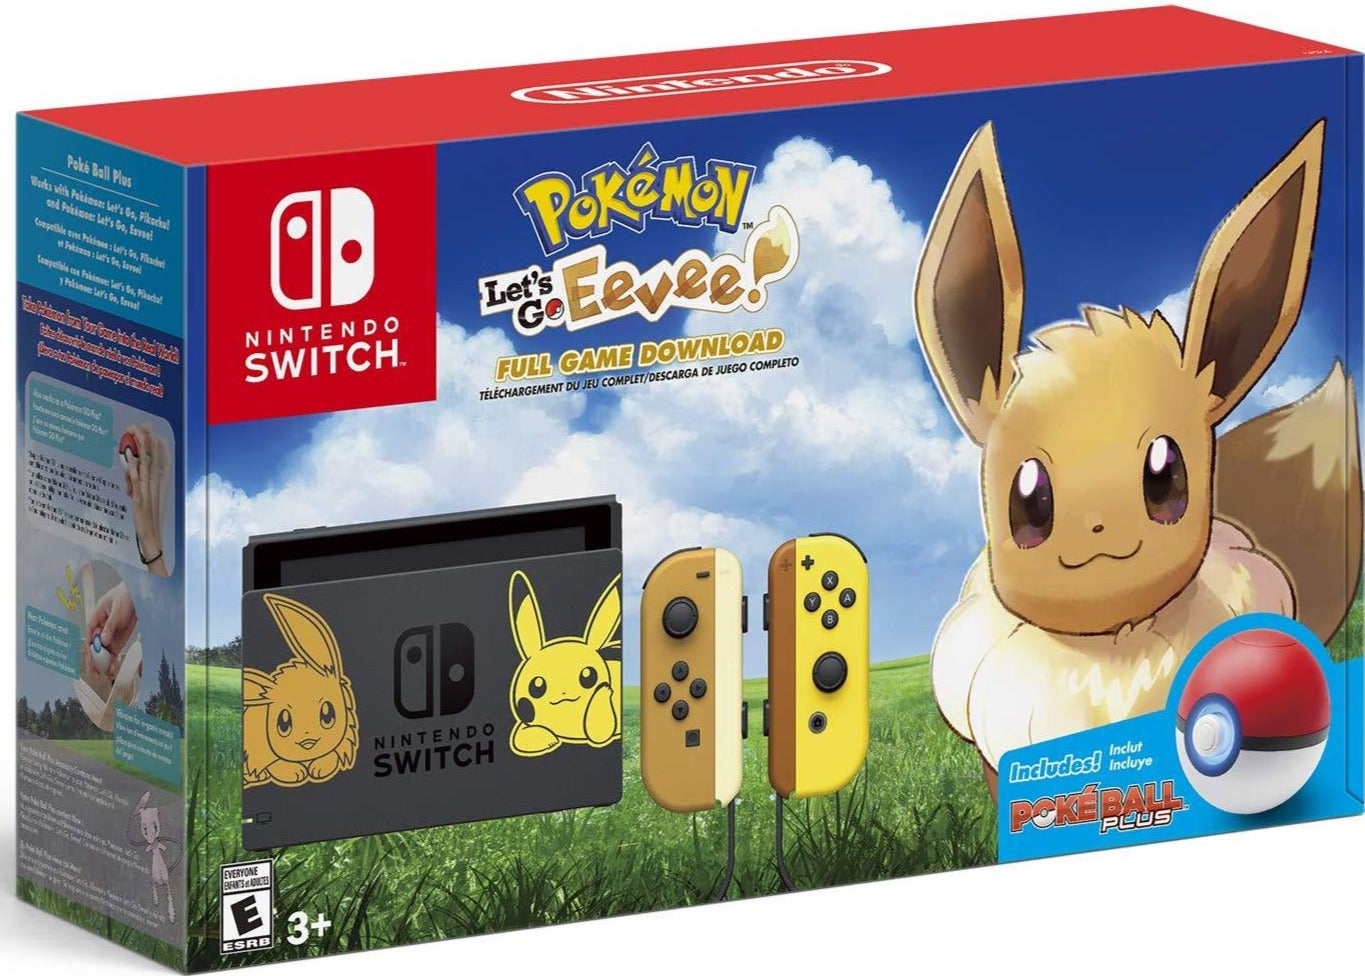 Pokemon: Let's Go, Eevee! (Nintendo Switch Pikachu &Pokemon: Let's Go, Eevee! (Nintendo Switch Pikachu & Eevee Console Bundle) - Nintendo Switch